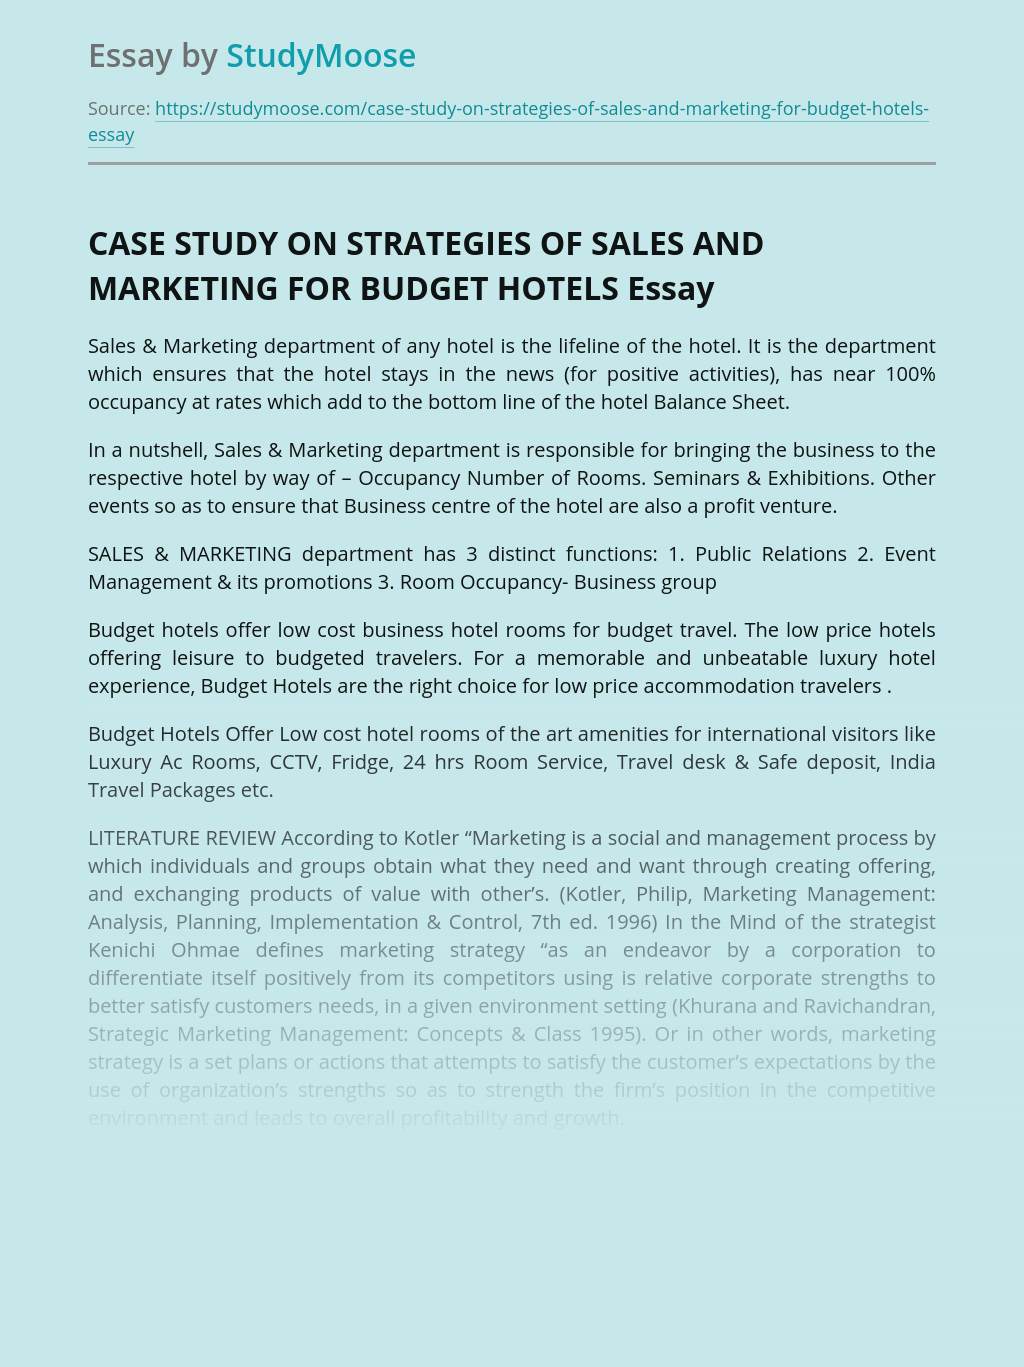 CASE STUDY ON STRATEGIES OF SALES AND MARKETING FOR BUDGET HOTELS